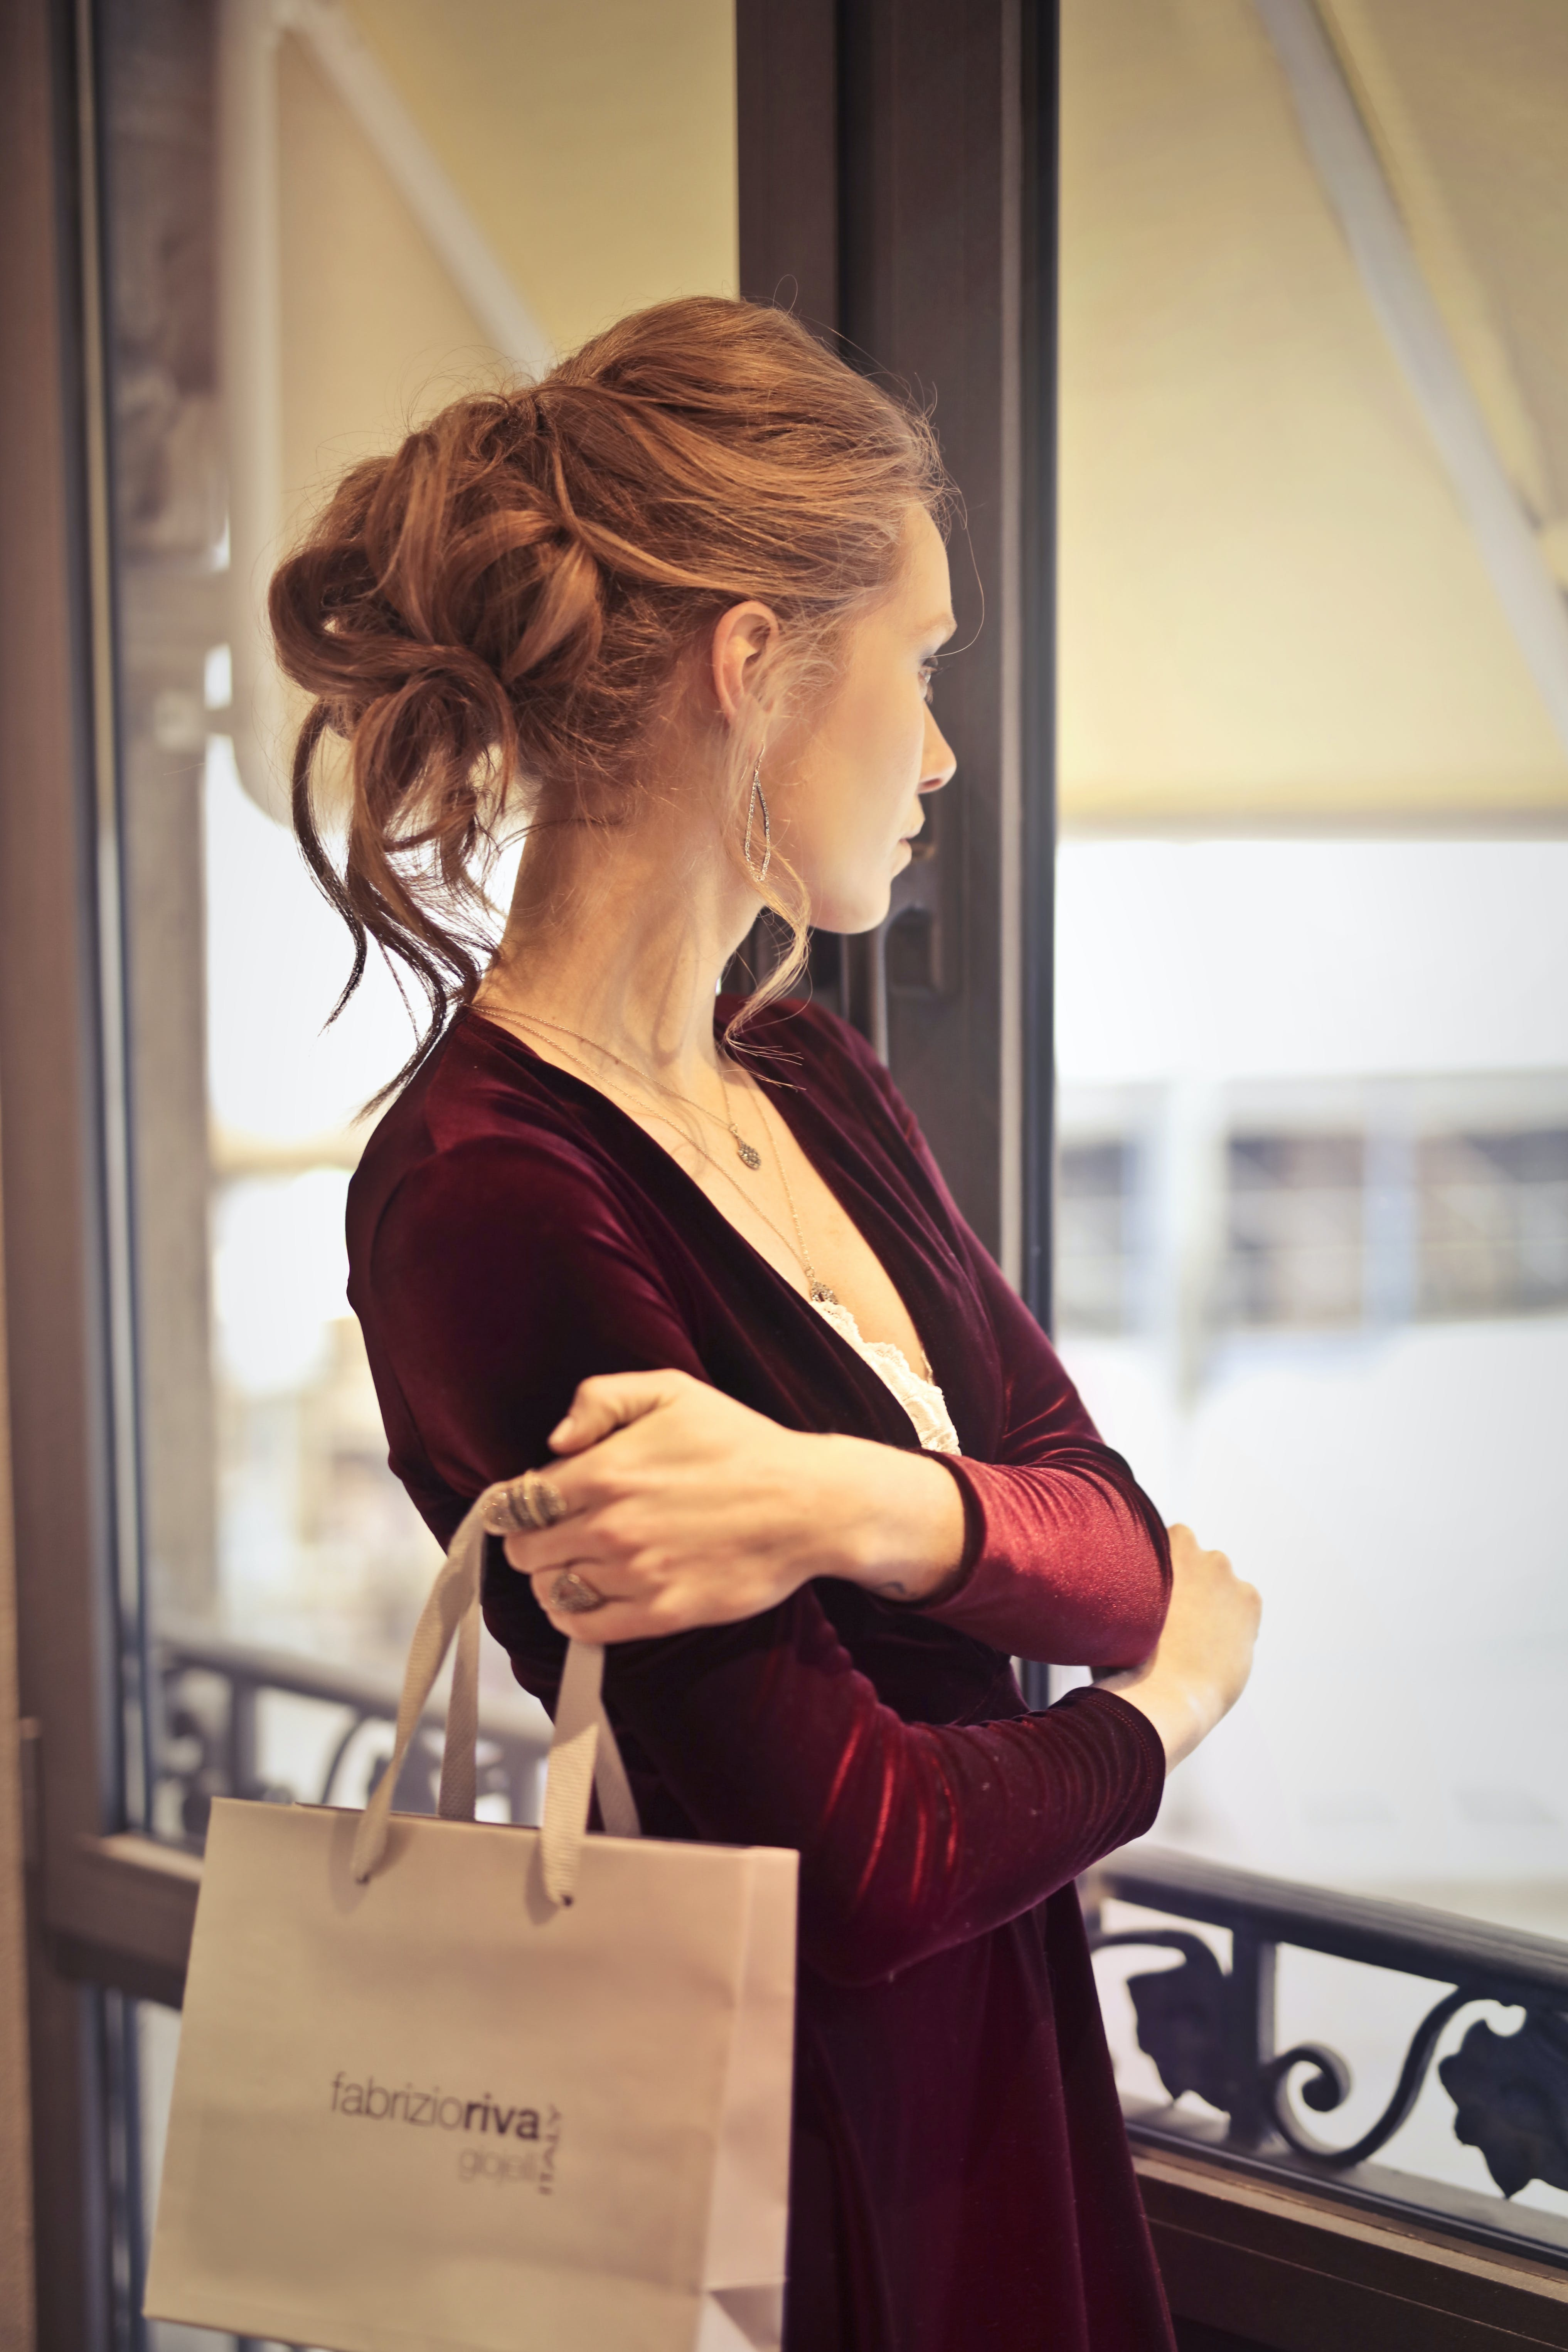 Woman Holding White Paper Bag While Looking at the Window